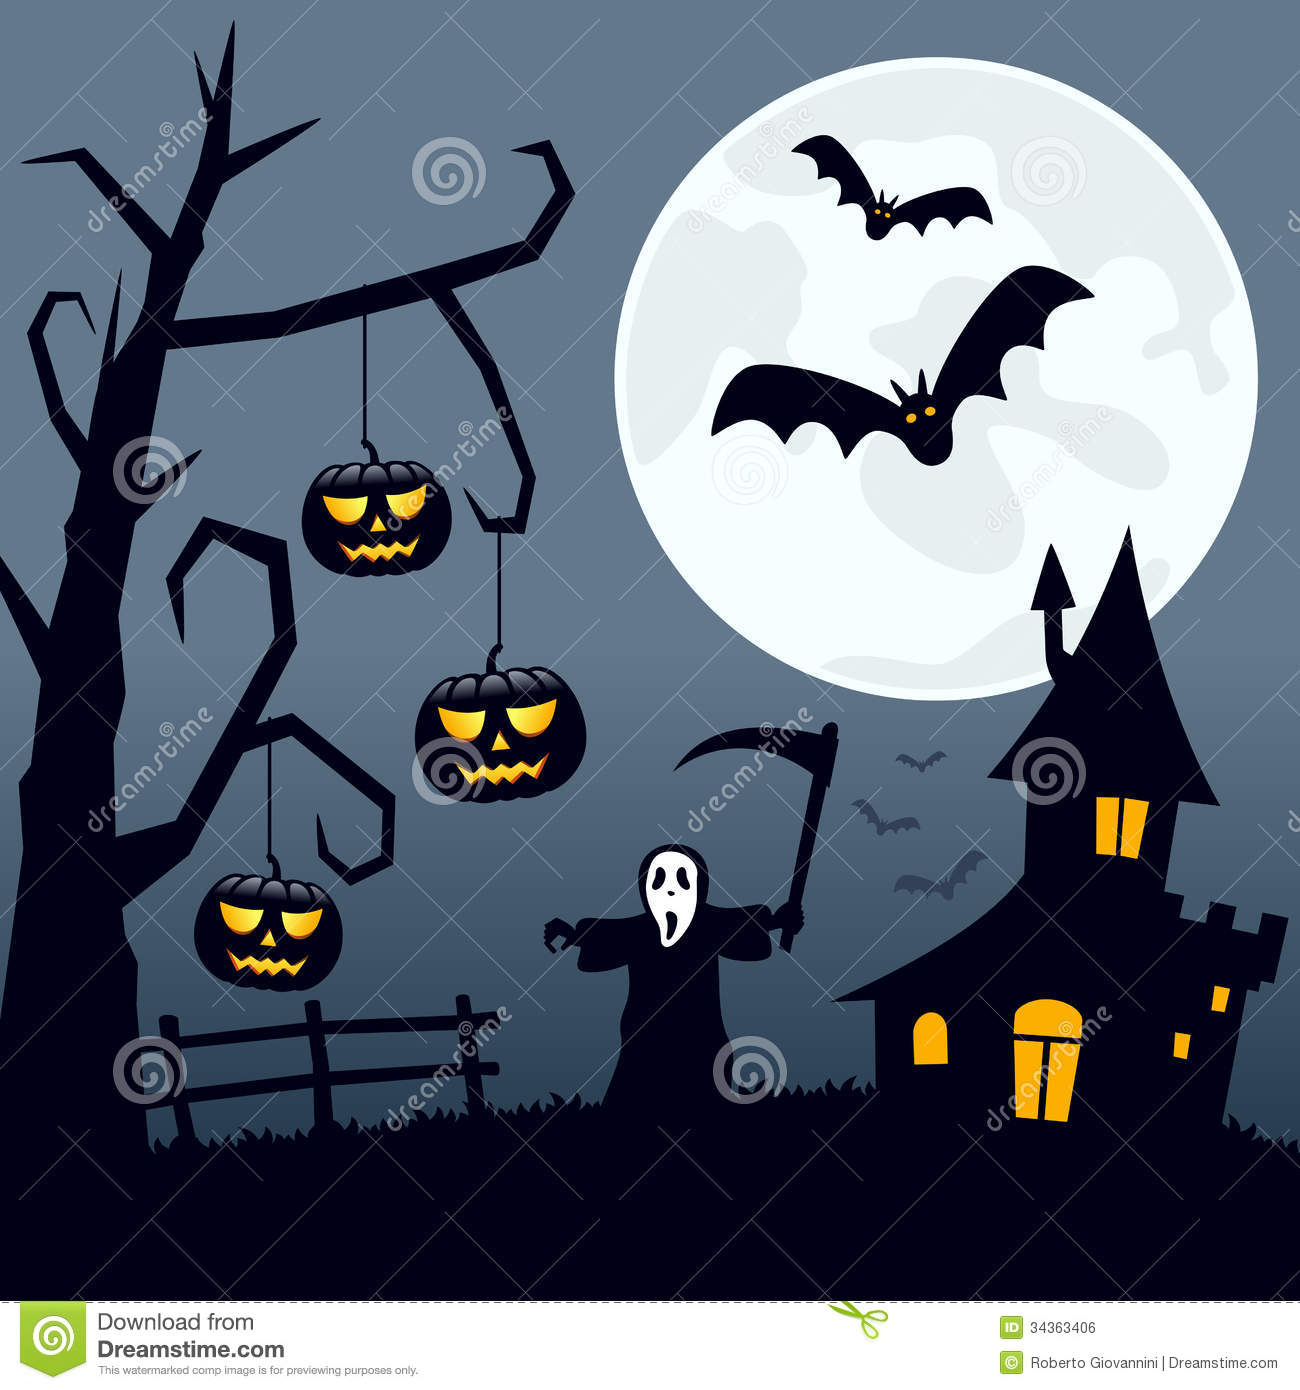 Haunted clipart halloween scene Background Moon scene With moon